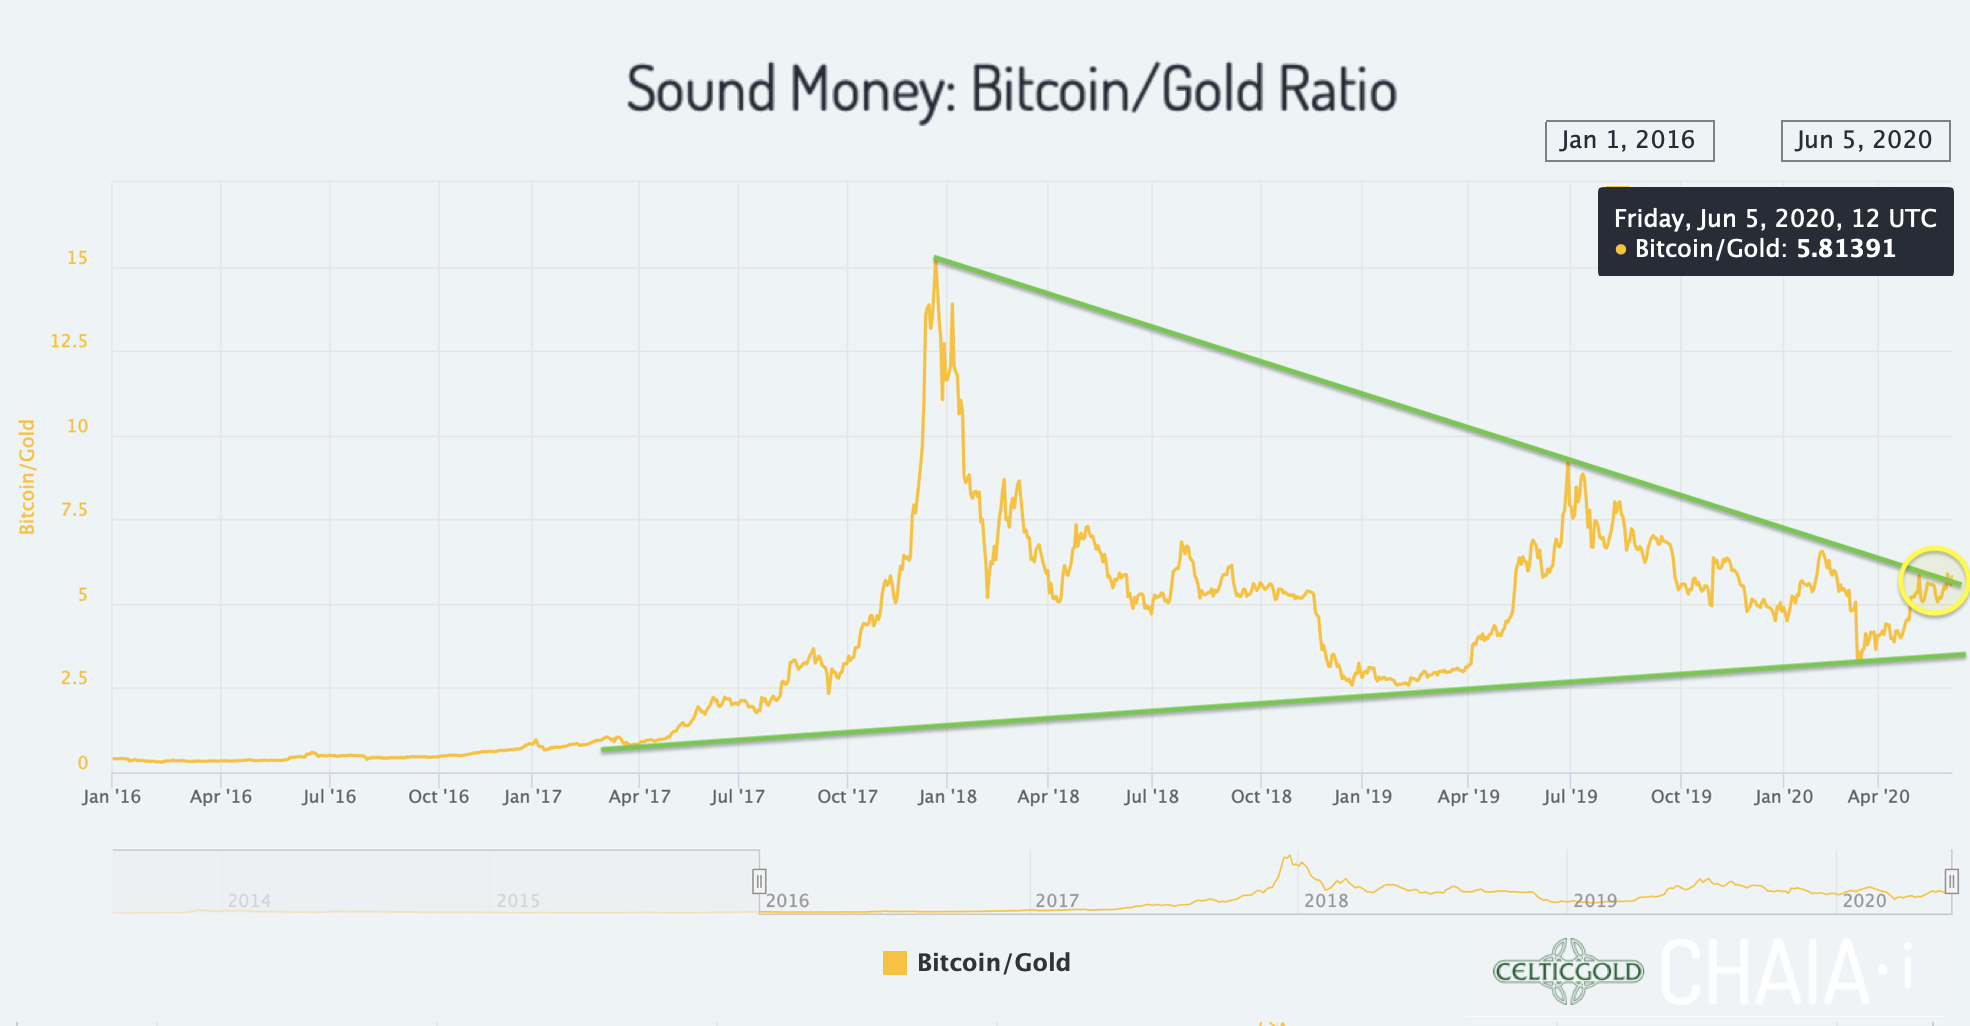 Sound Money Bitcoin/Gold-Ratio as of June 5th, 2020. Source:Chaia